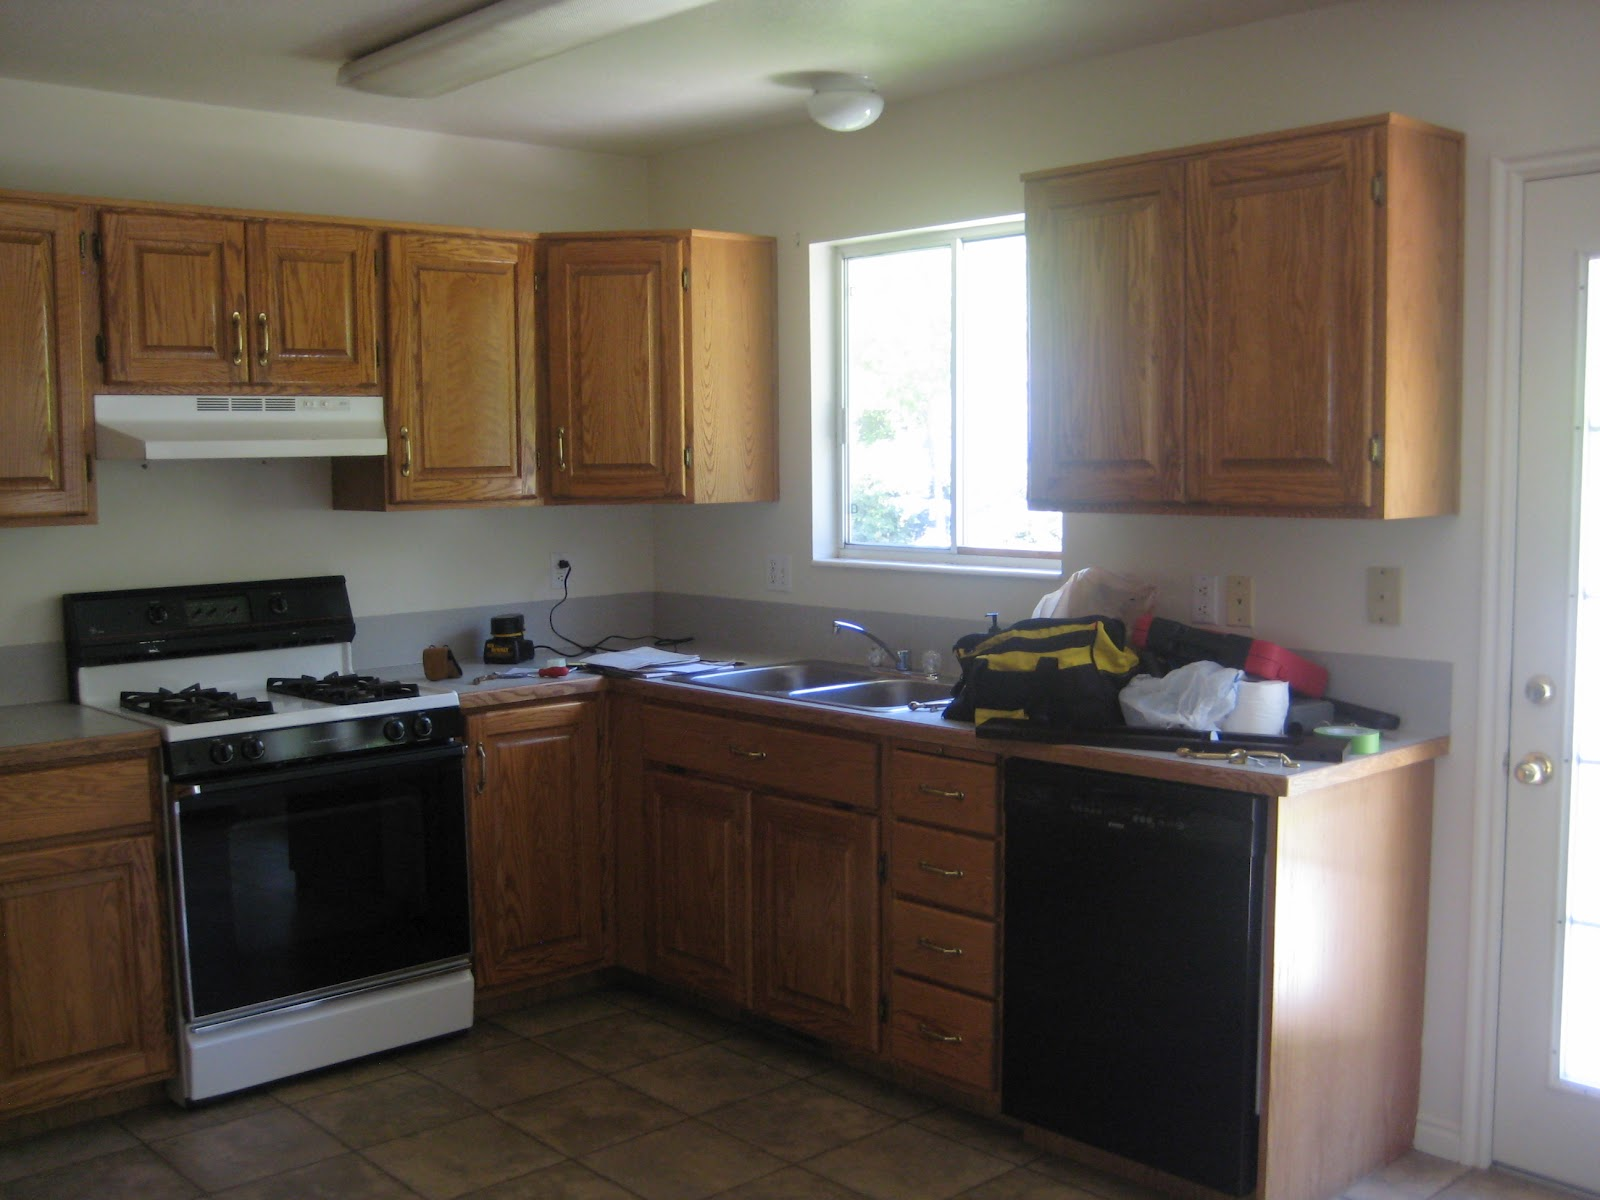 Remodeling Kitchen Contemporary Backsplash Everywhere Beautiful Remodel Big Results On A